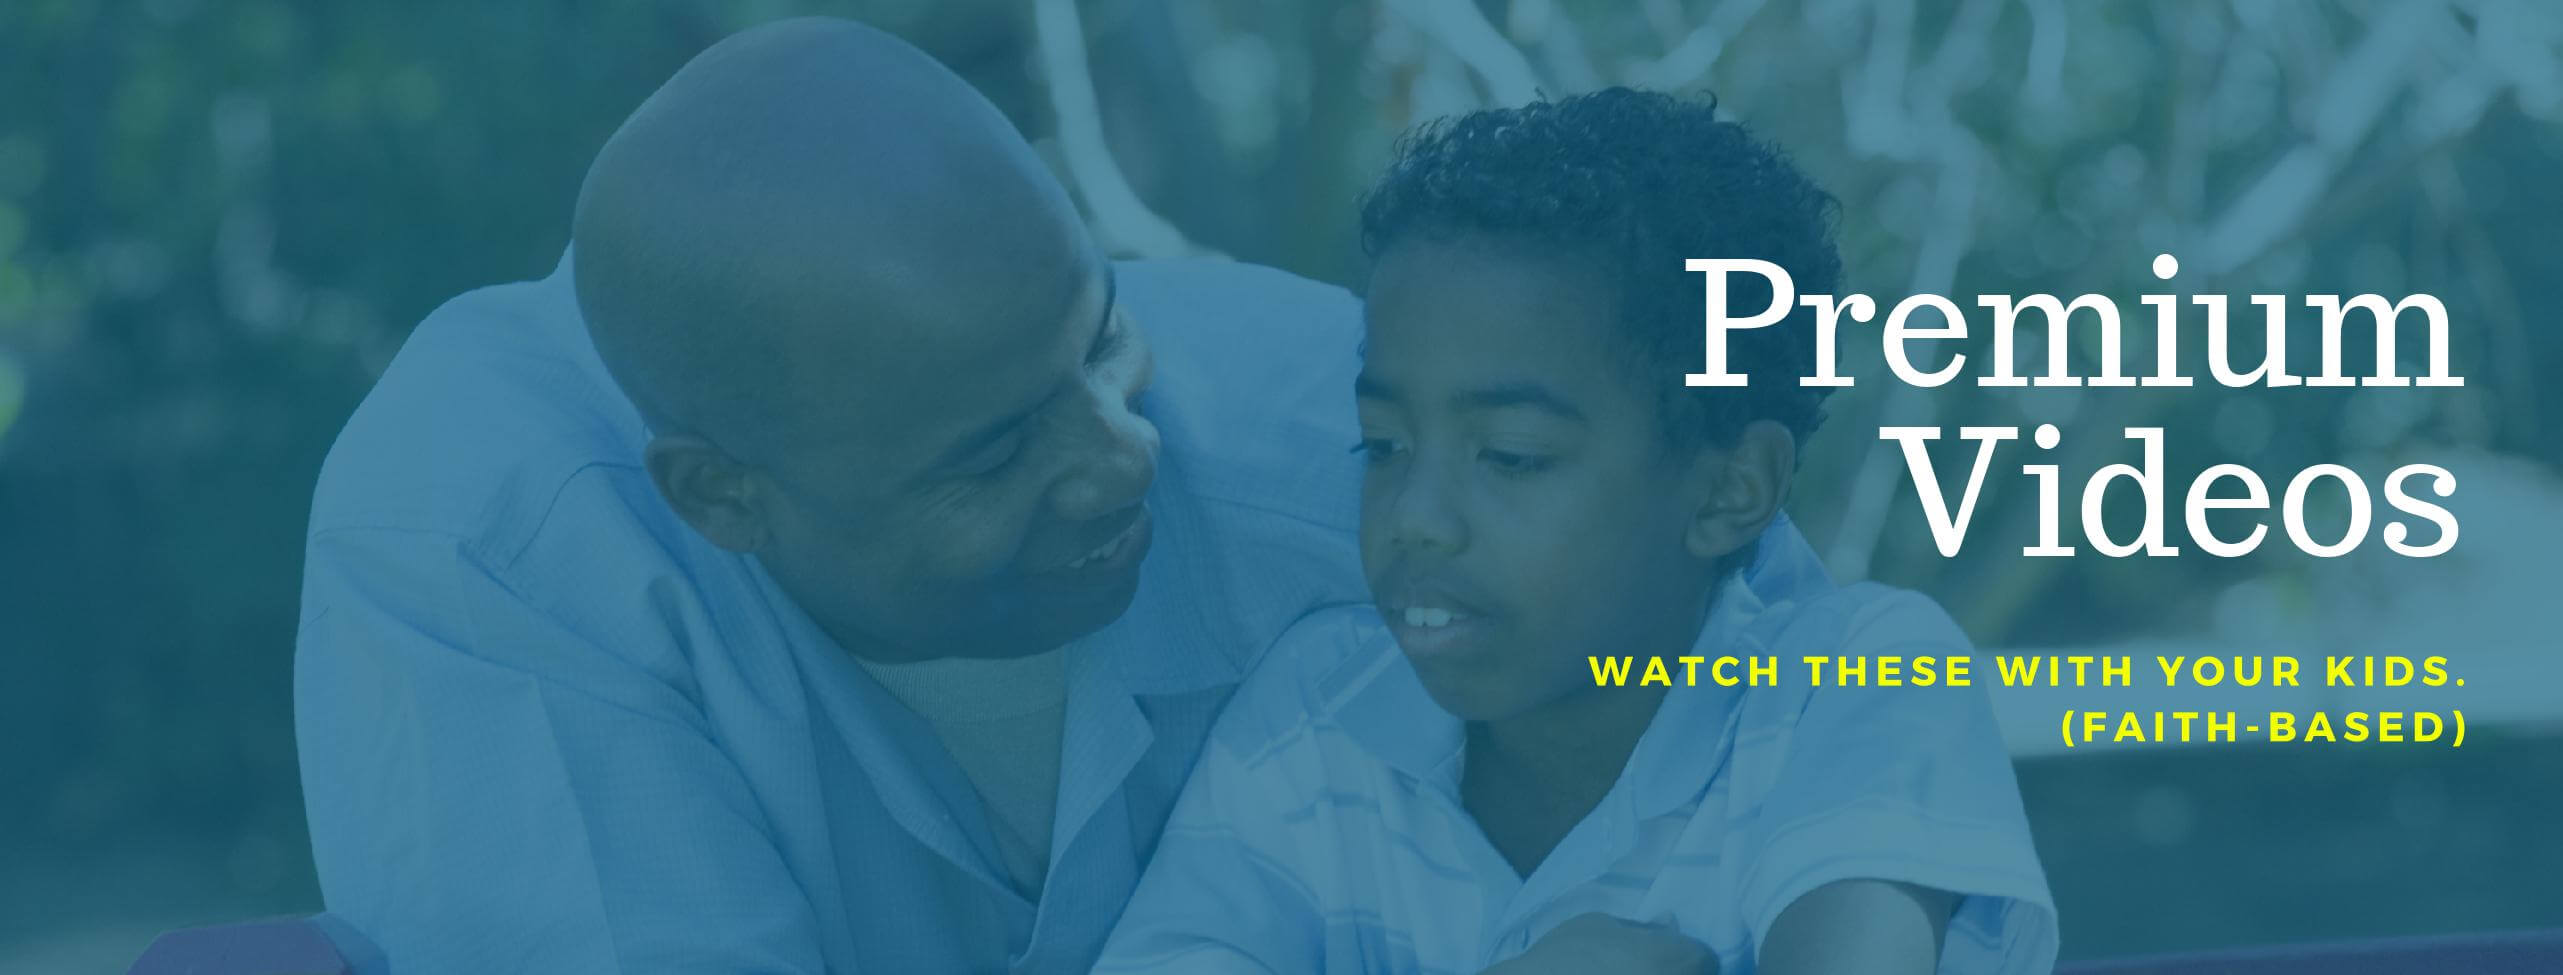 Internet Safety Videos - Protect Young Eyes Resources